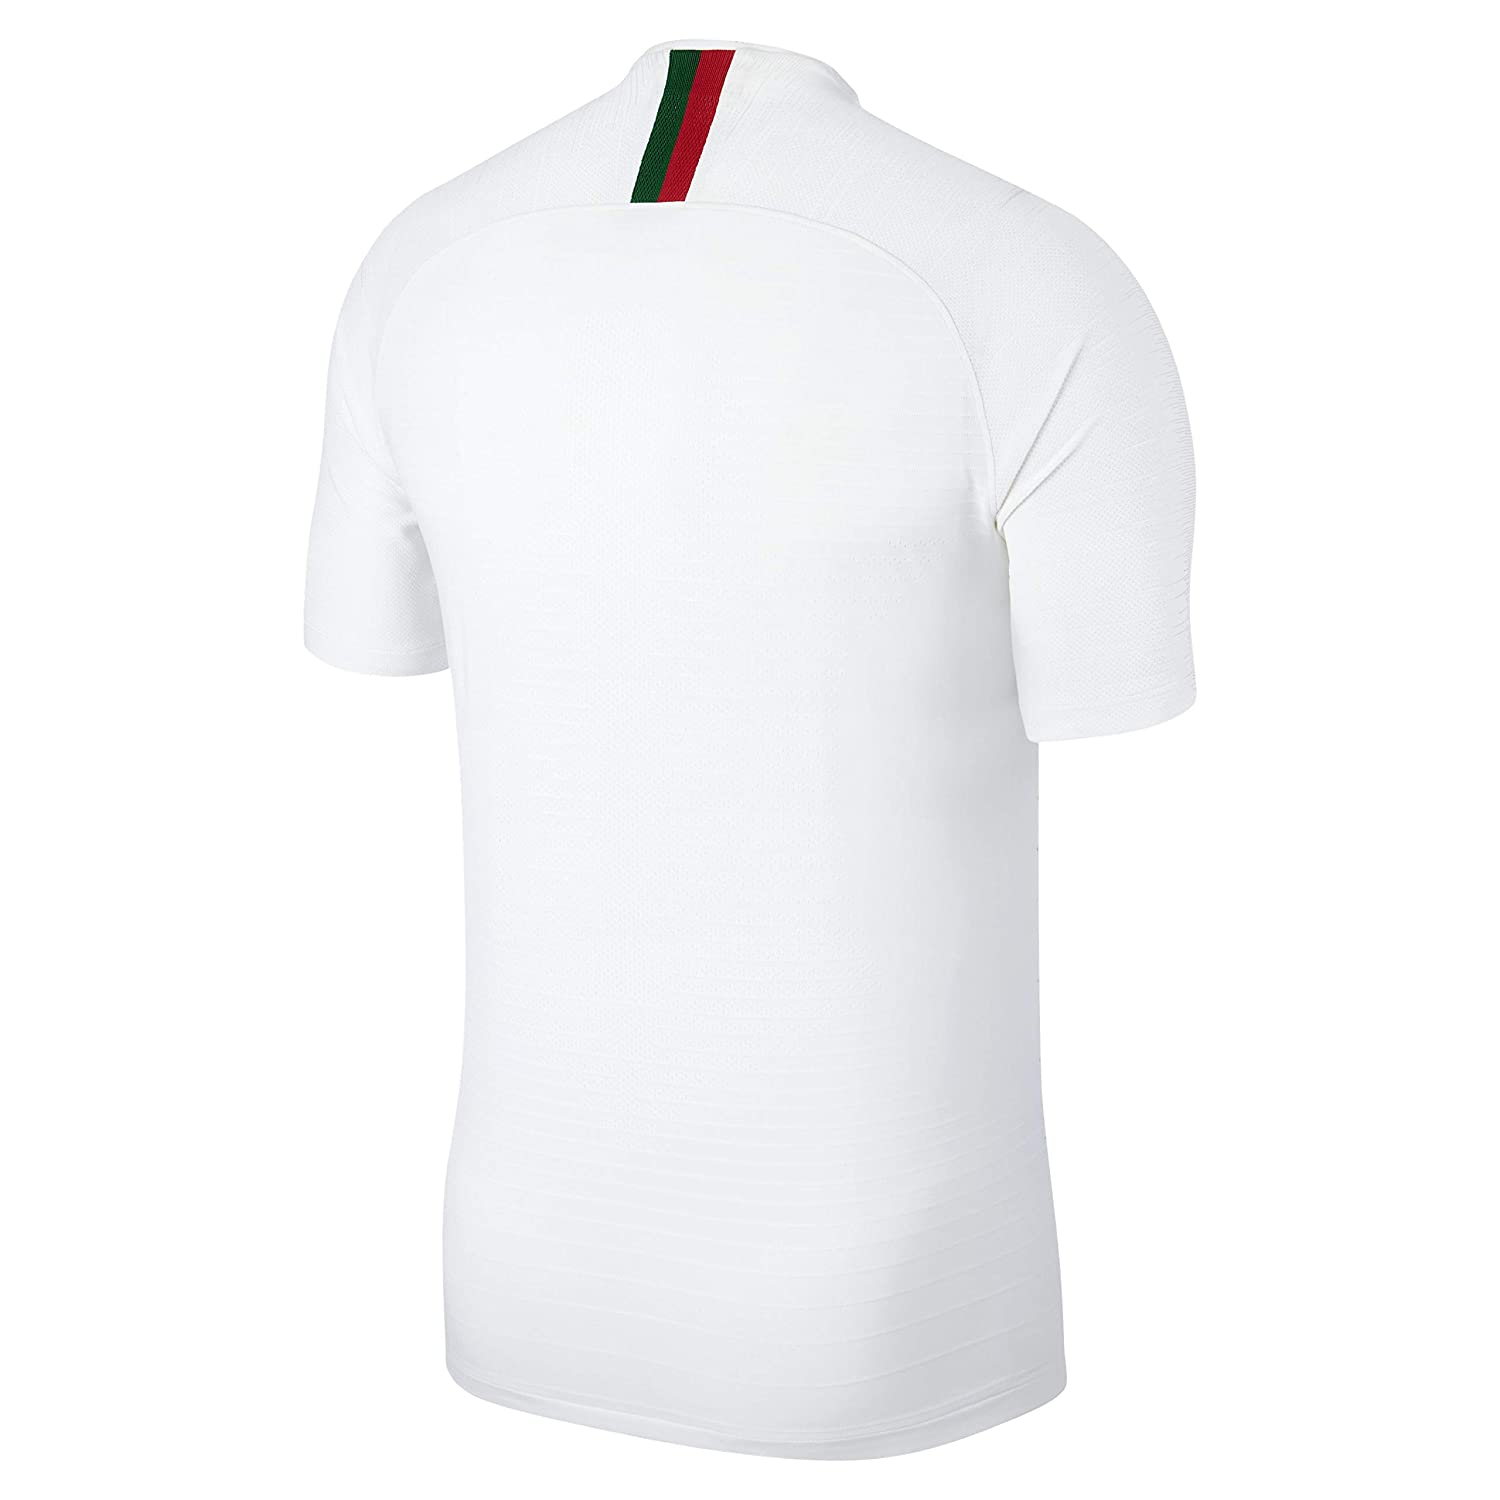 a5cacdabd89 Amazon.com   Nike 2018-2019 Portugal Away Vapor Match Football Soccer T-Shirt  Jersey   Clothing